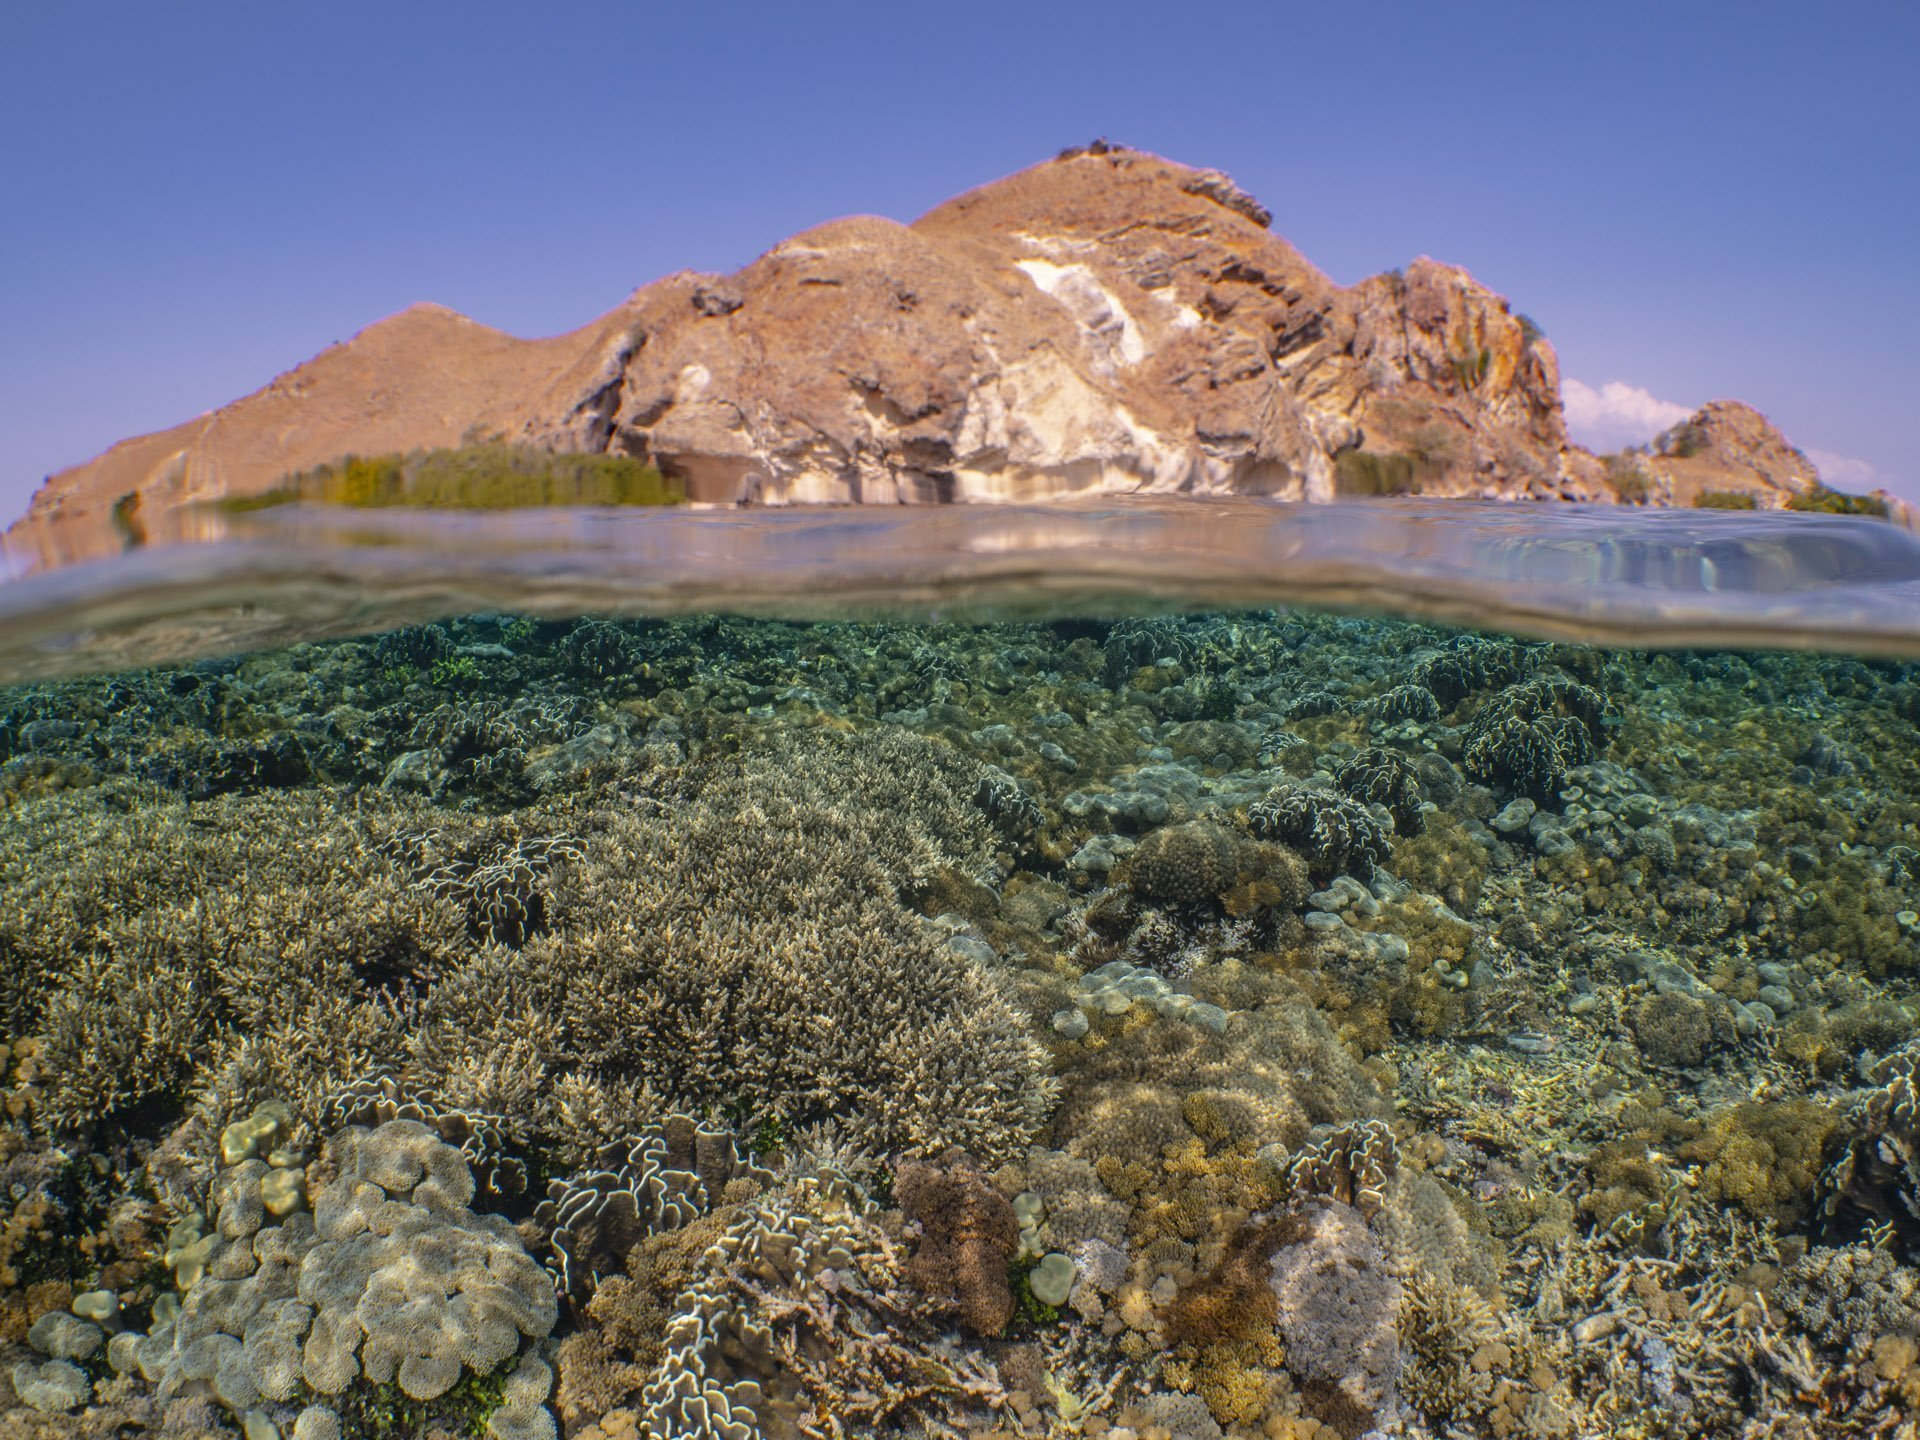 Split shot of Komodo reef and Komodo island